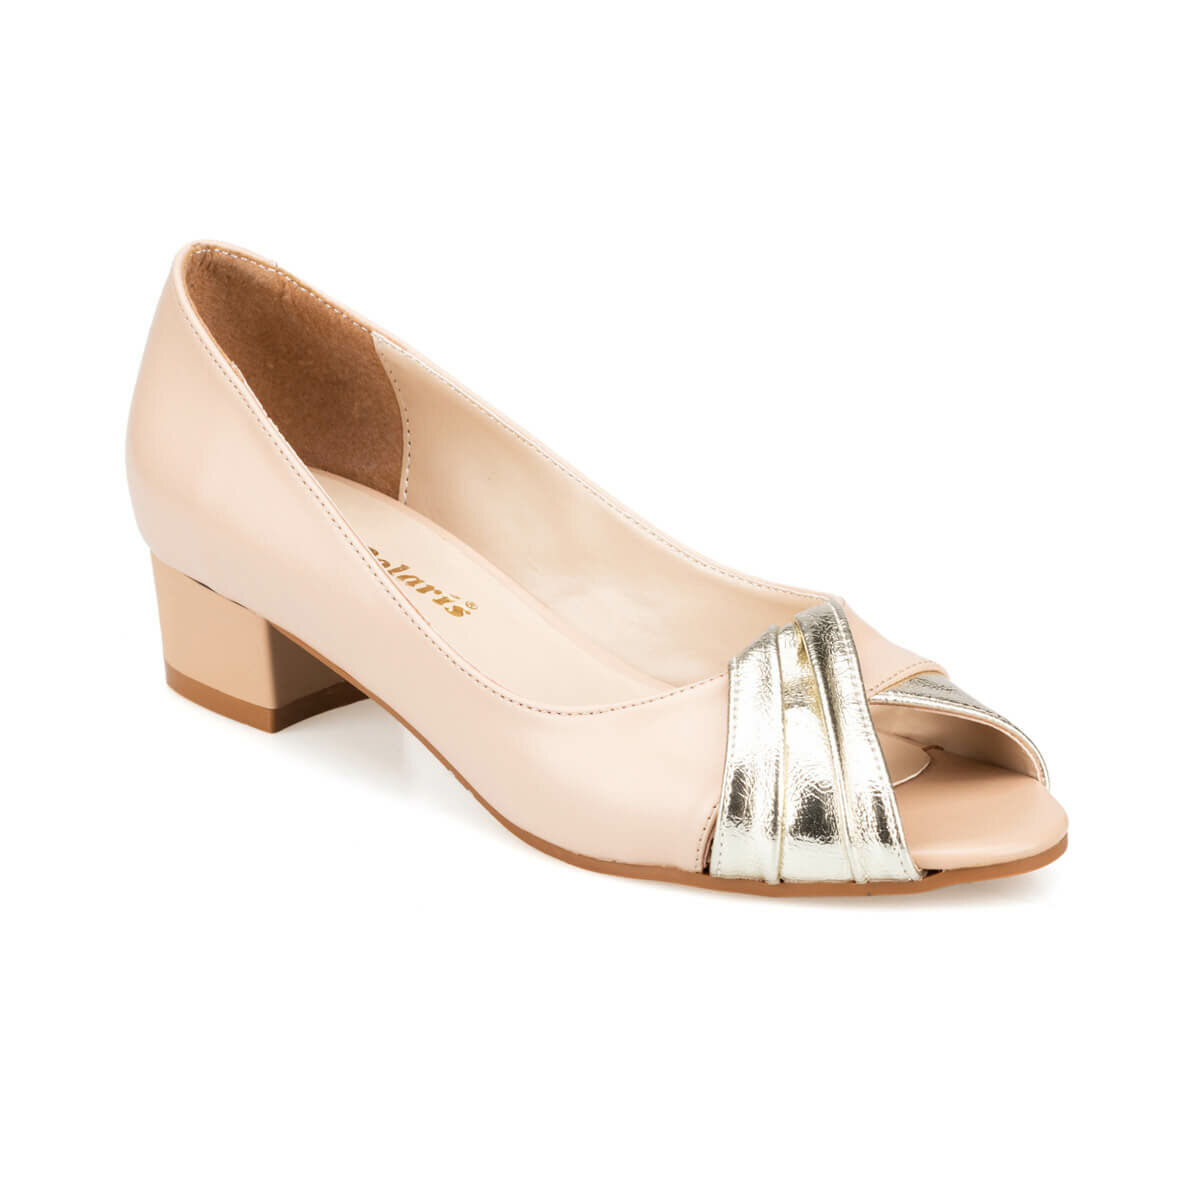 FLO 91. 150711.Z Beige Women 'S Shoes Polaris